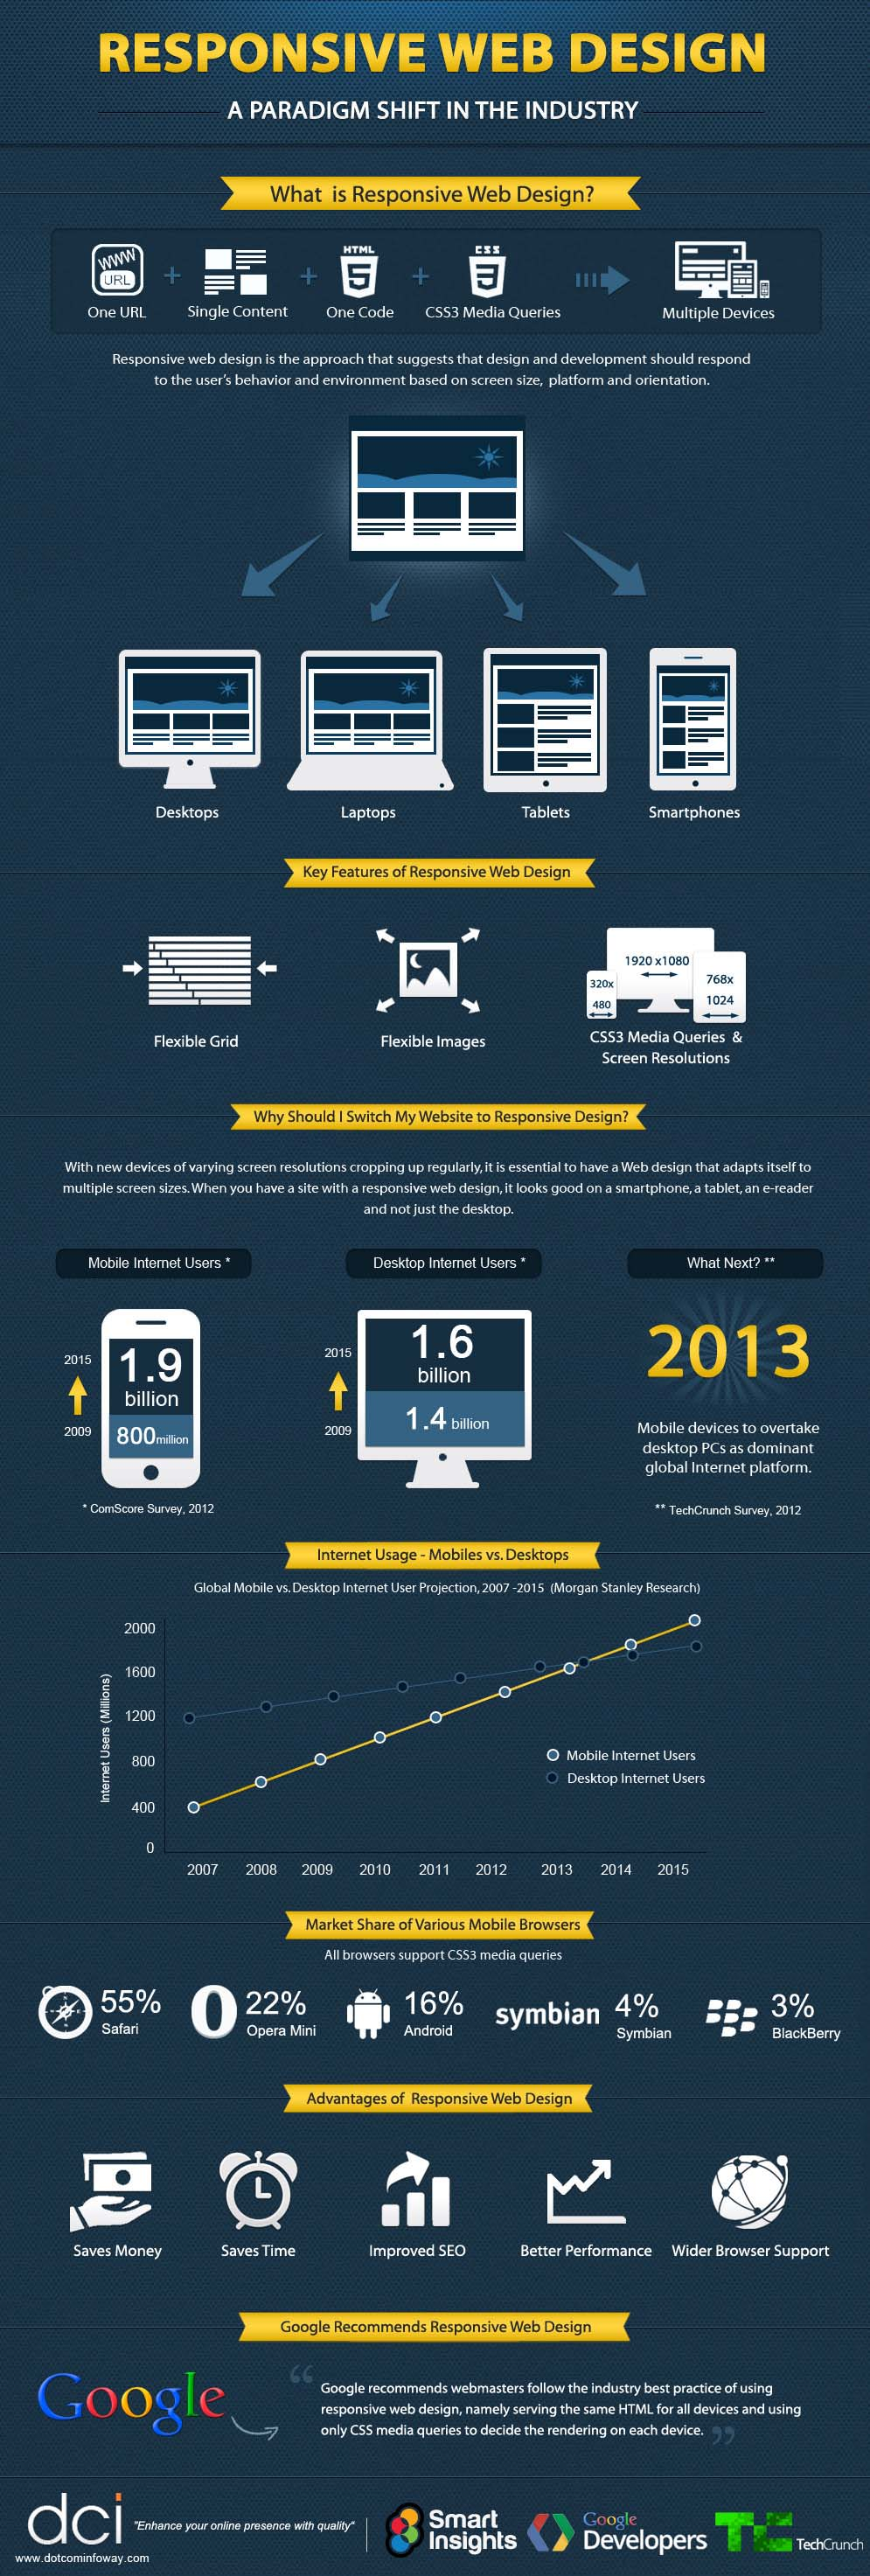 Top 7 Reasons Why You Should Consider Responsive Web Design